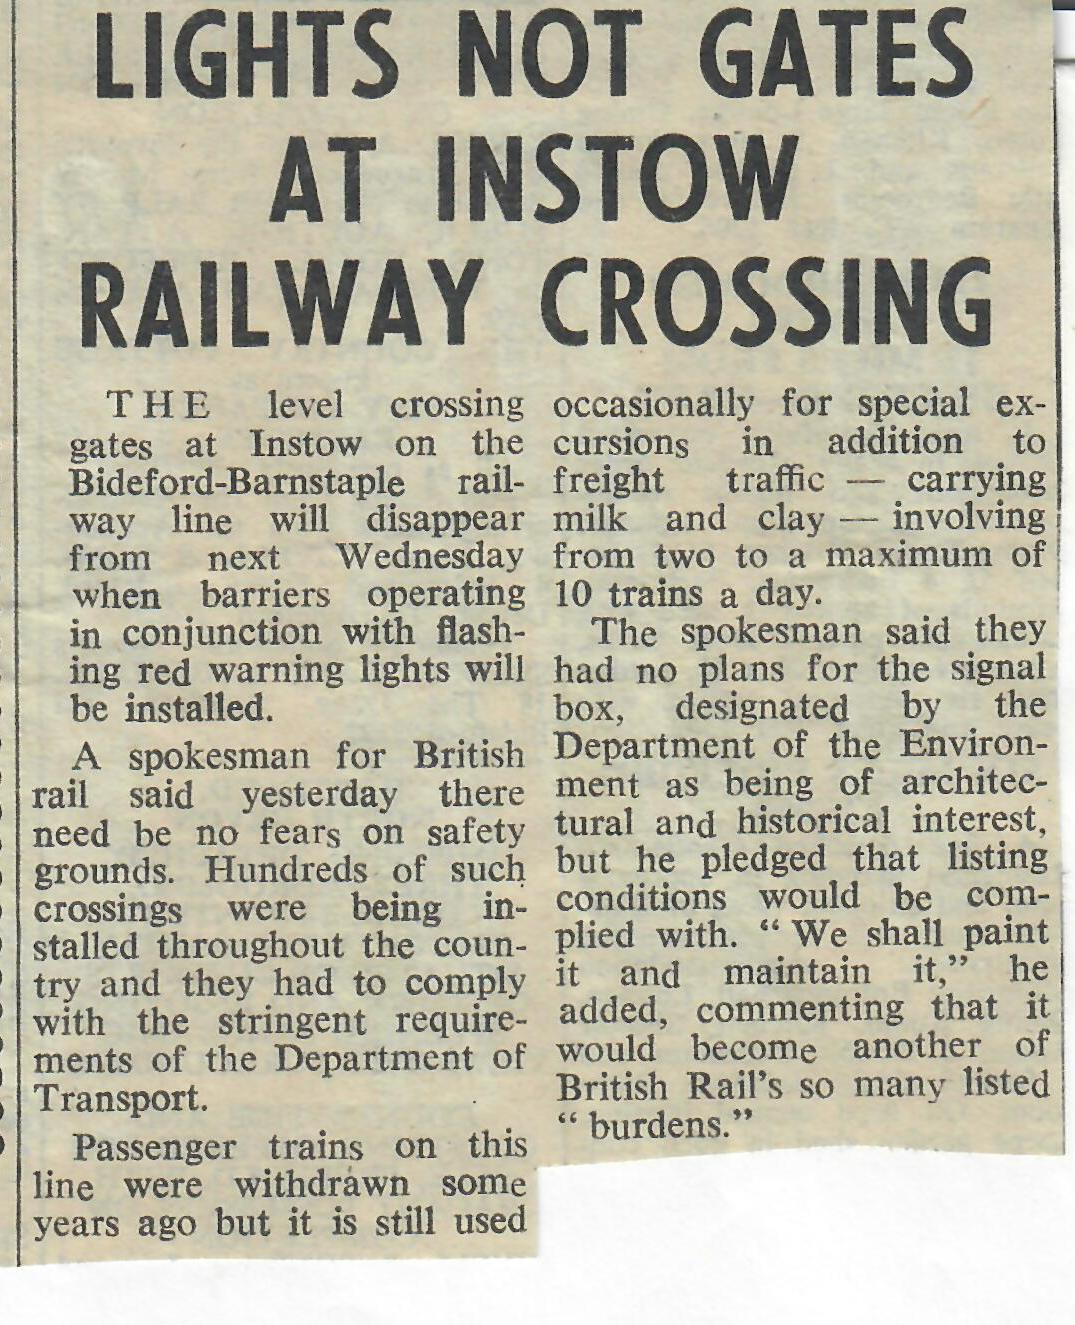 lights not gates at Instow Railway Crossing